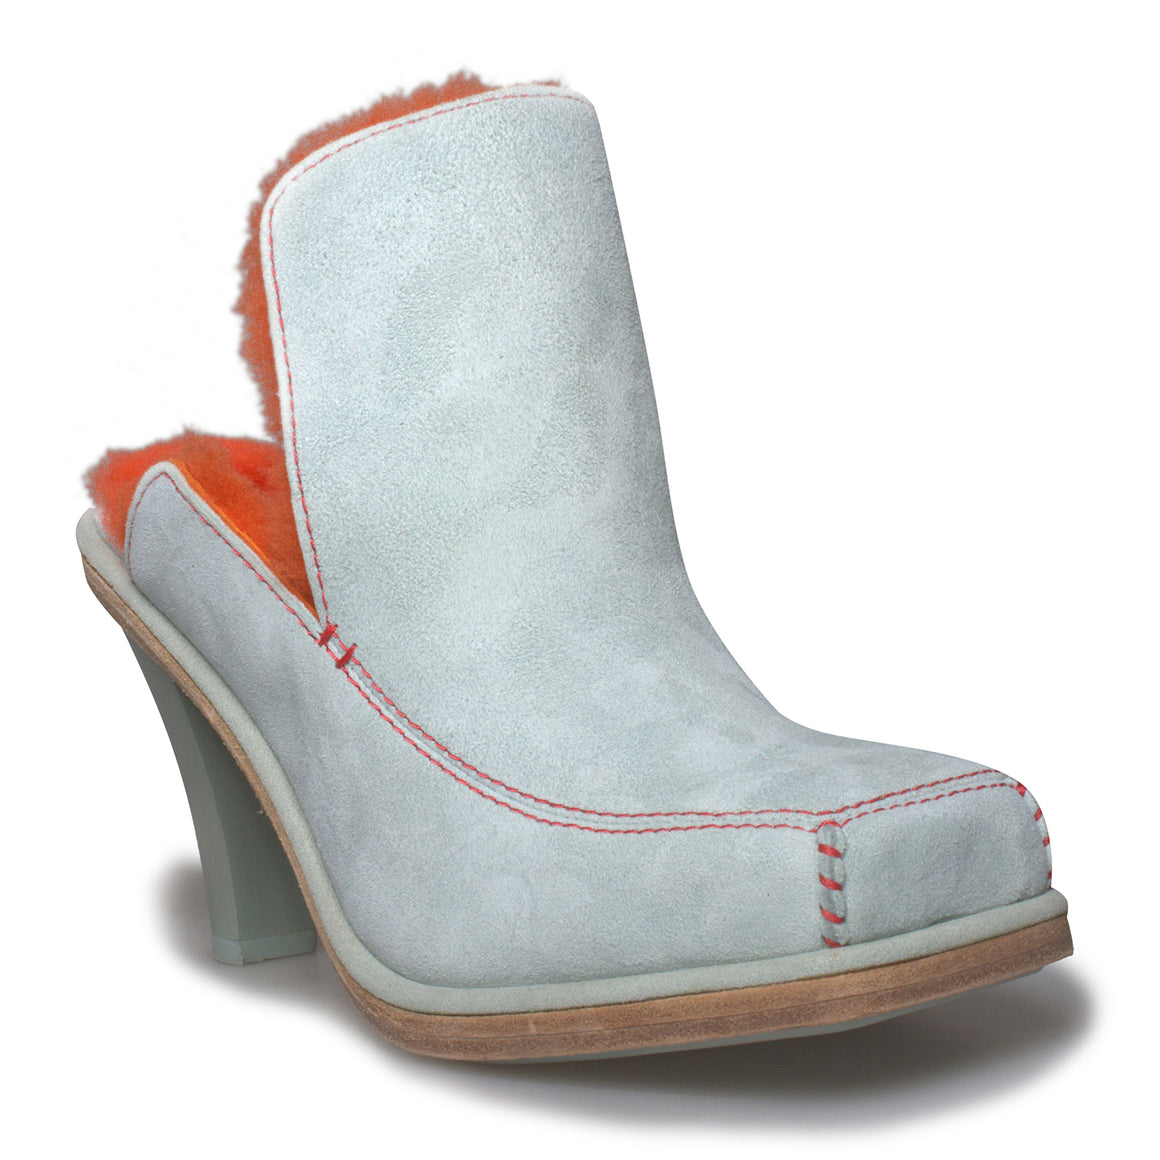 UGG Court Mule Eckhaus Latta Sky Grey / Mandarin Orange Heels - Women's